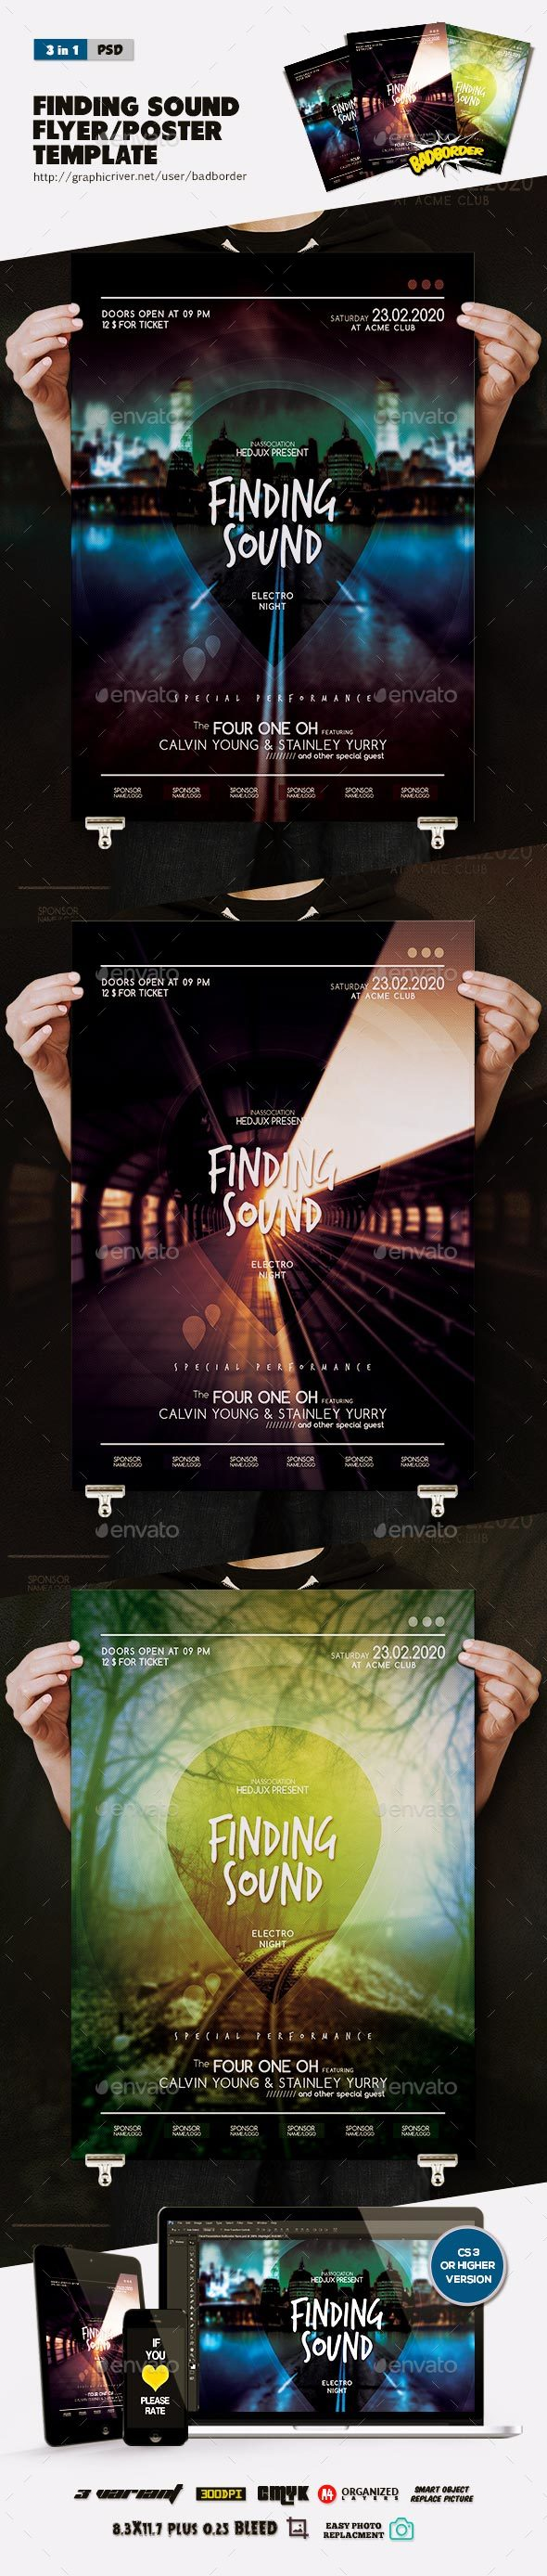 Finding Sound Flyer/Poster - Clubs & Parties Events